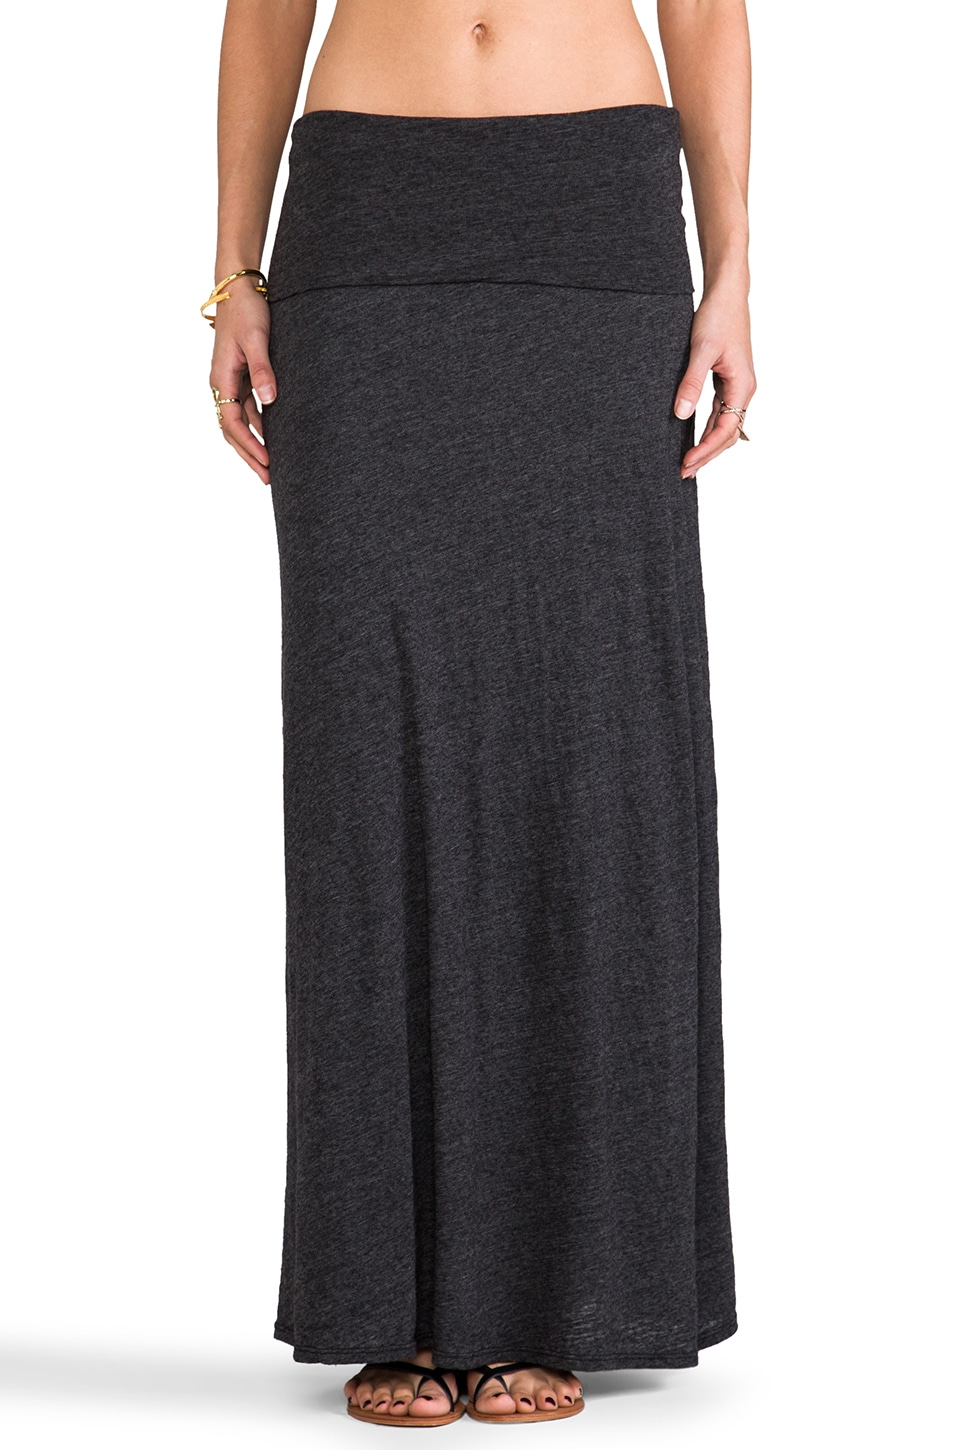 Velvet by Graham & Spencer Velvet Soft Texture Lindsey Skirt in Black